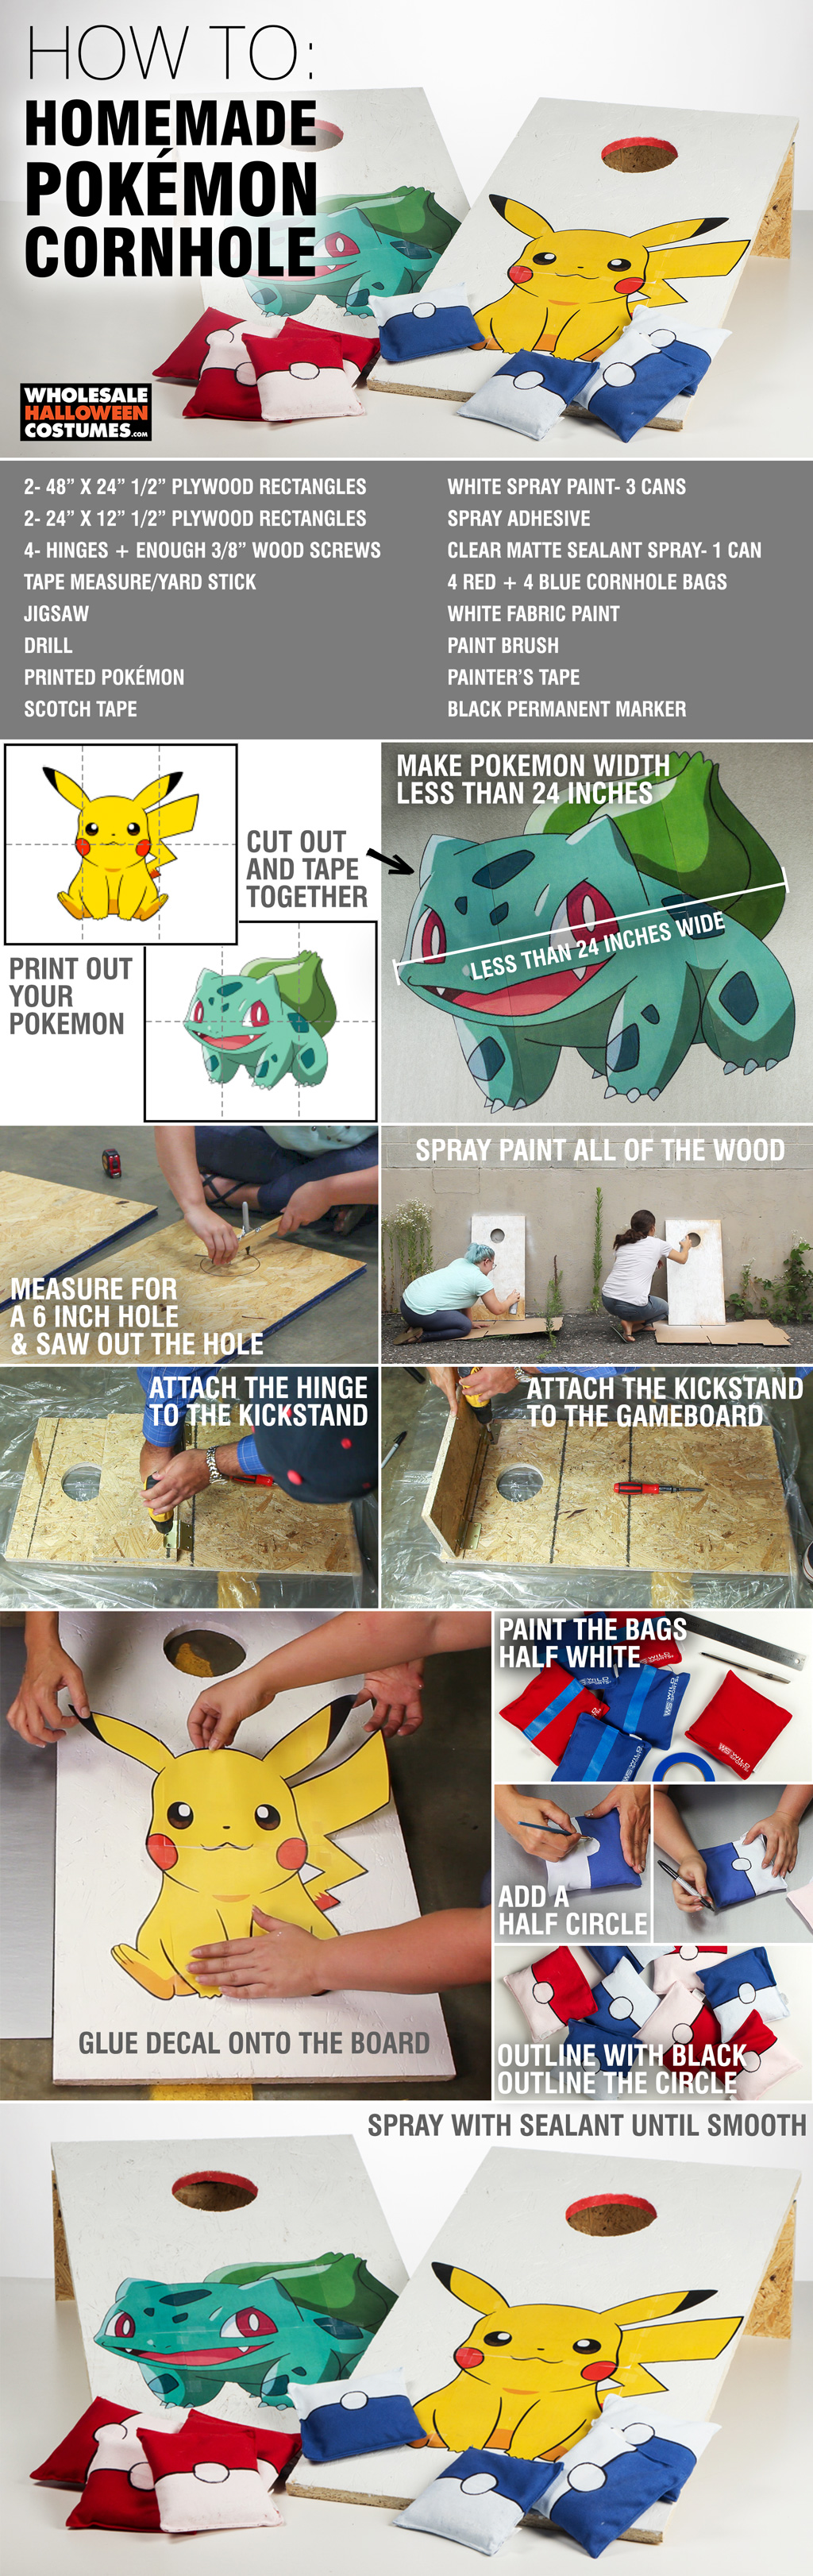 DIY Pokemon Cornhole Guide